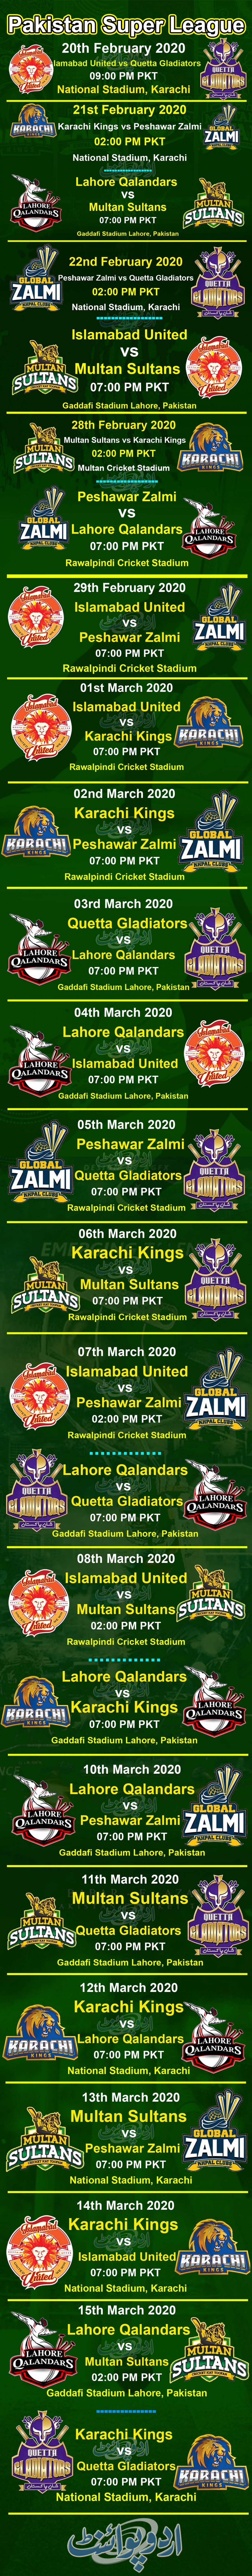 PSL Live Streaming - PSL Schedule 2020 and Live Score Infographic